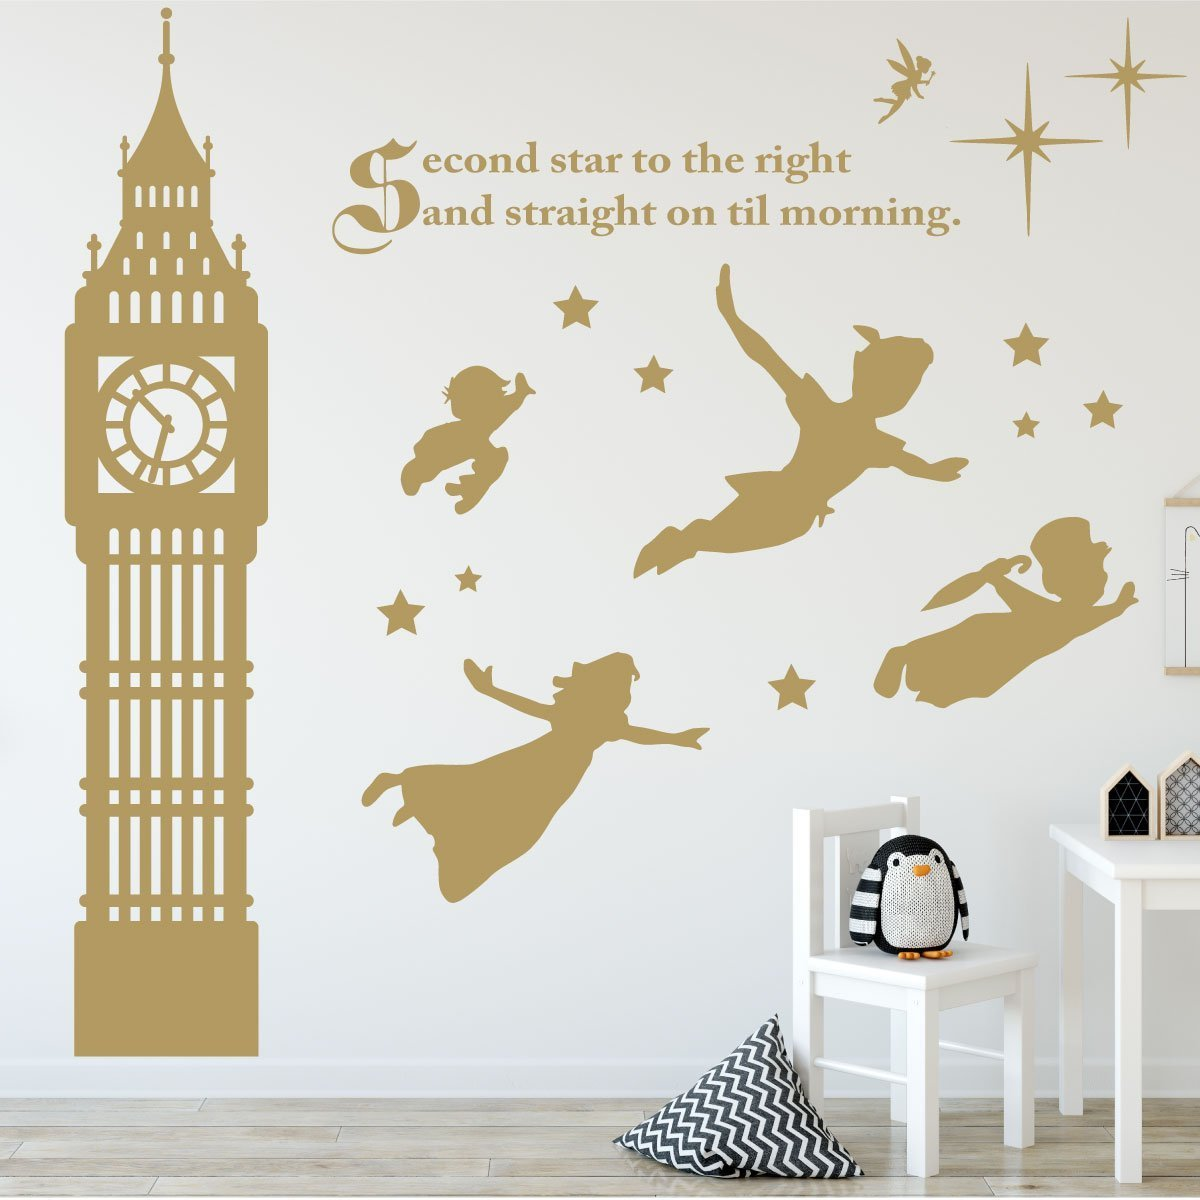 Amazon peter pan decor disney wall decals vinyl art amazon peter pan decor disney wall decals vinyl art stickers for kids room playroom boys room girls room second star to the right with amipublicfo Images